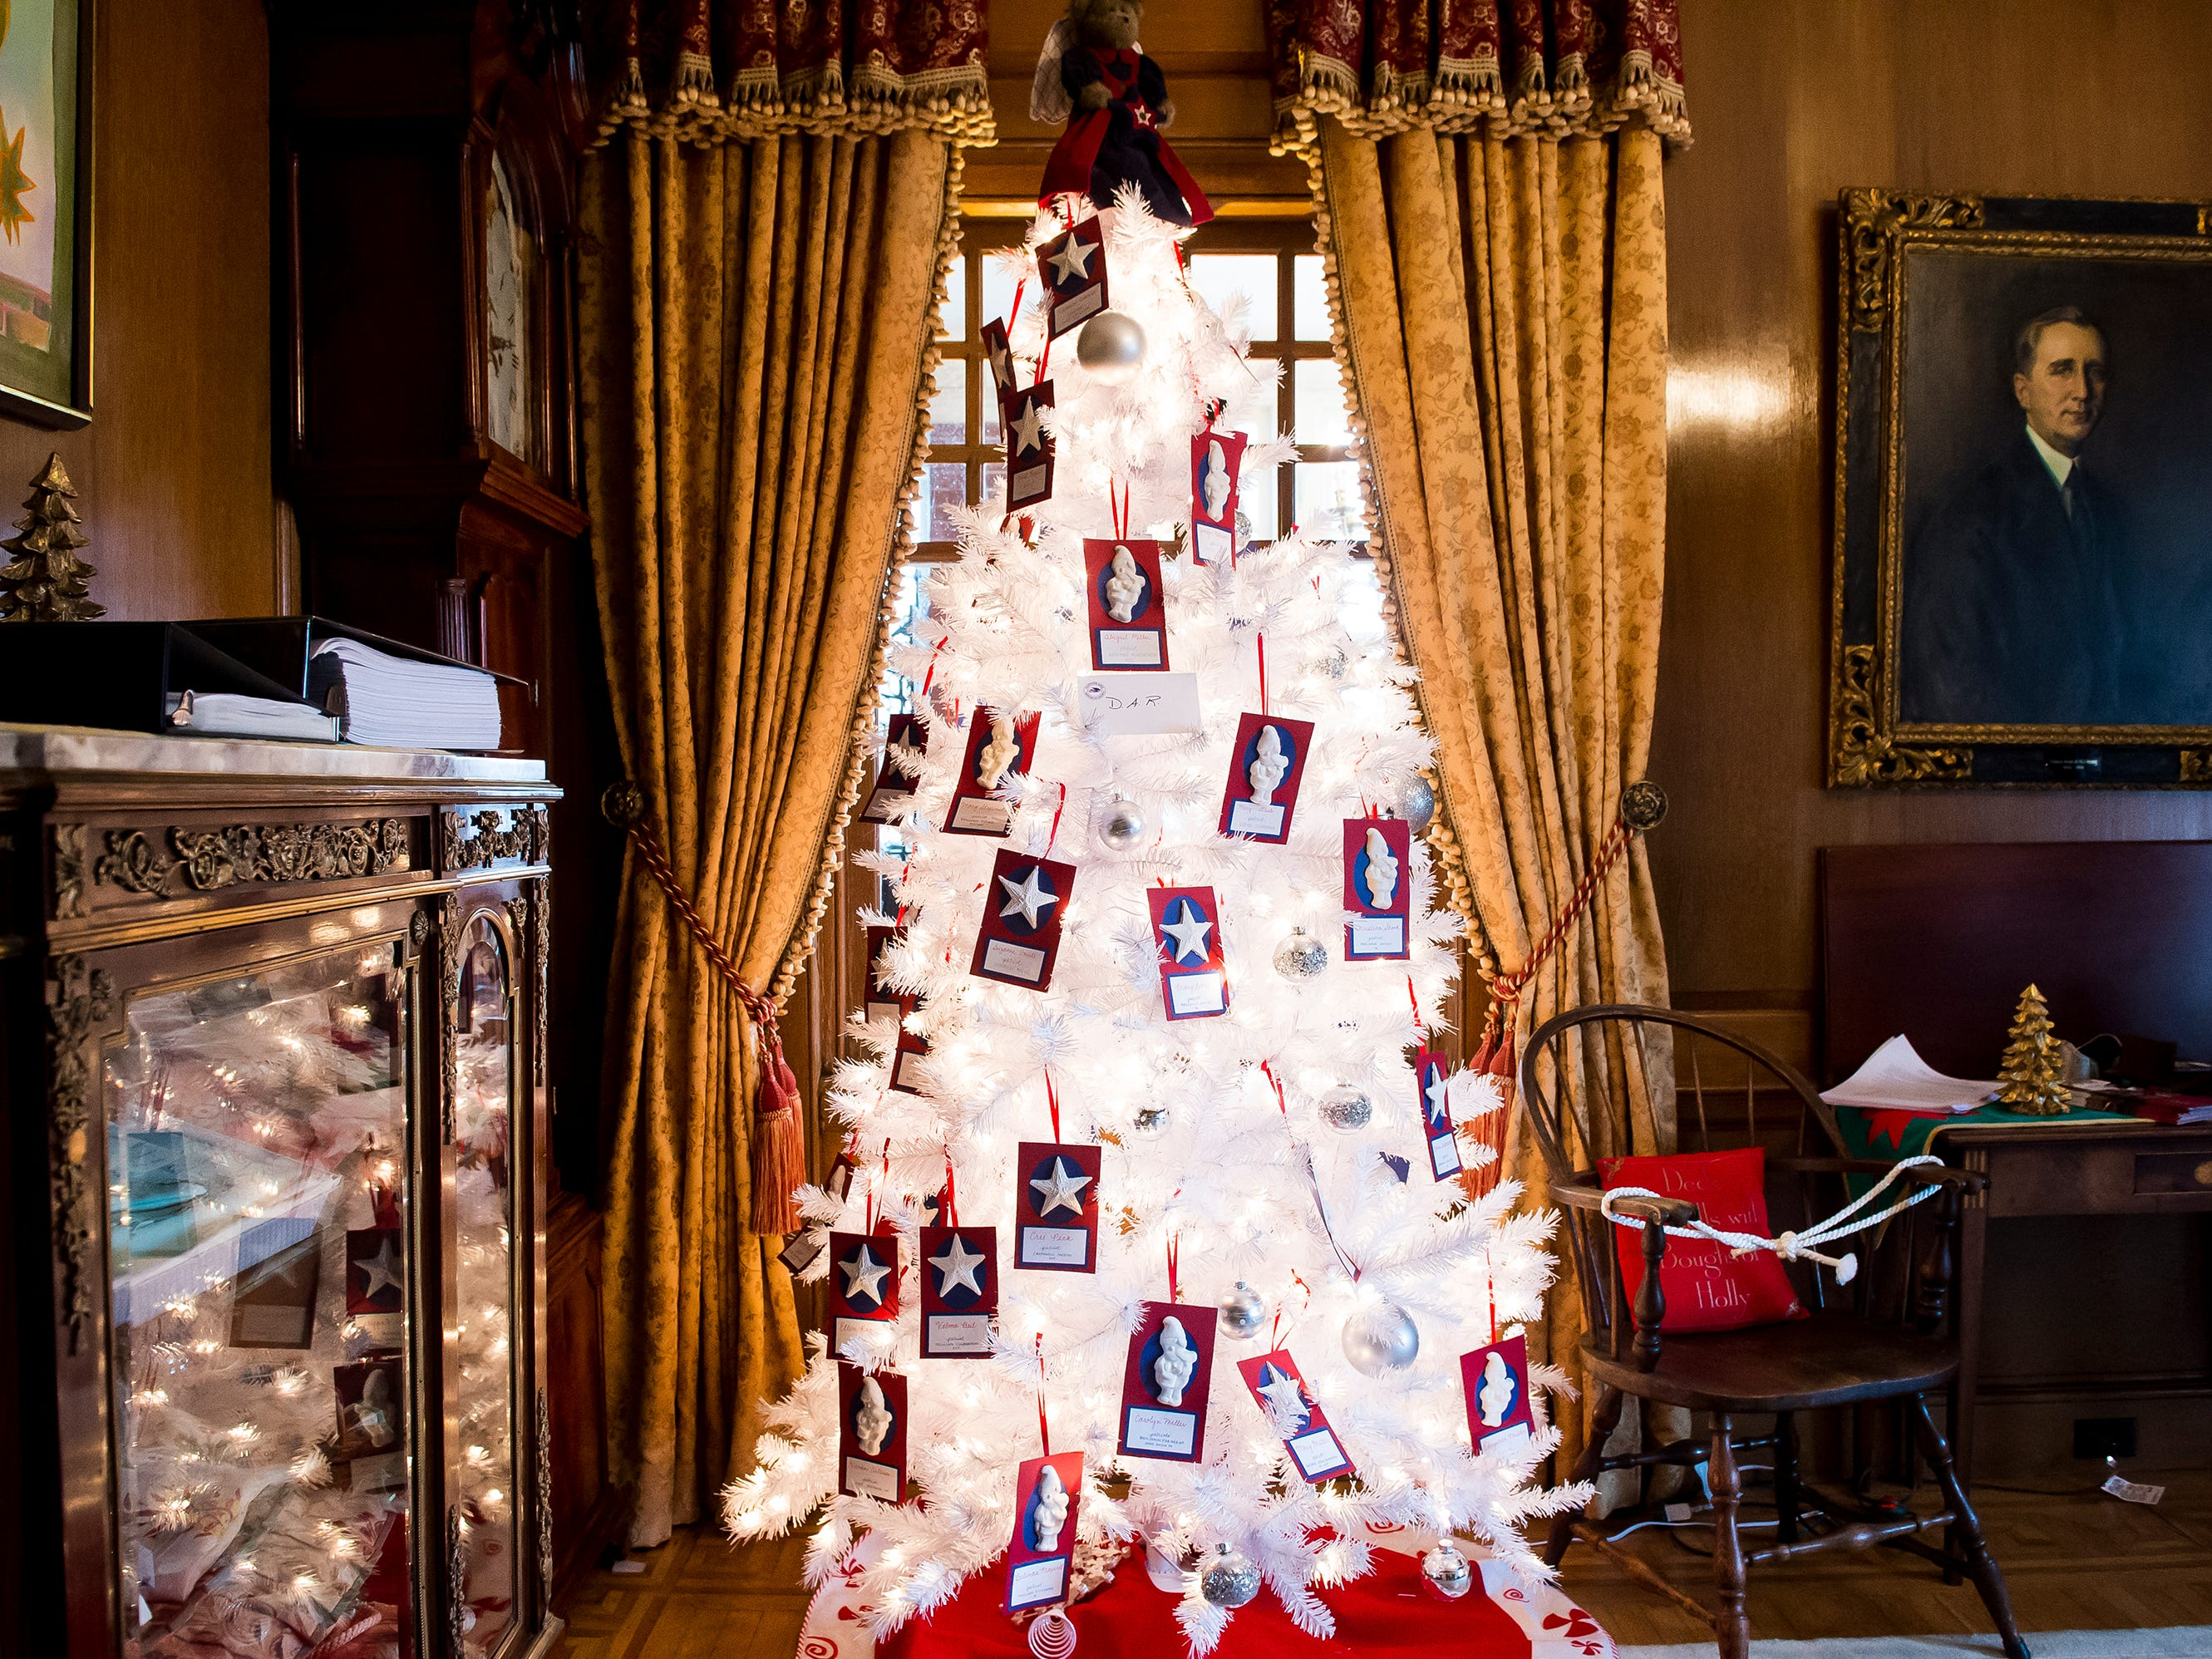 The Daughters of the American Revolution decorated this Christmas tree that is displayed in the Myers room of the Warehime-Myers Mansion in Hanover.